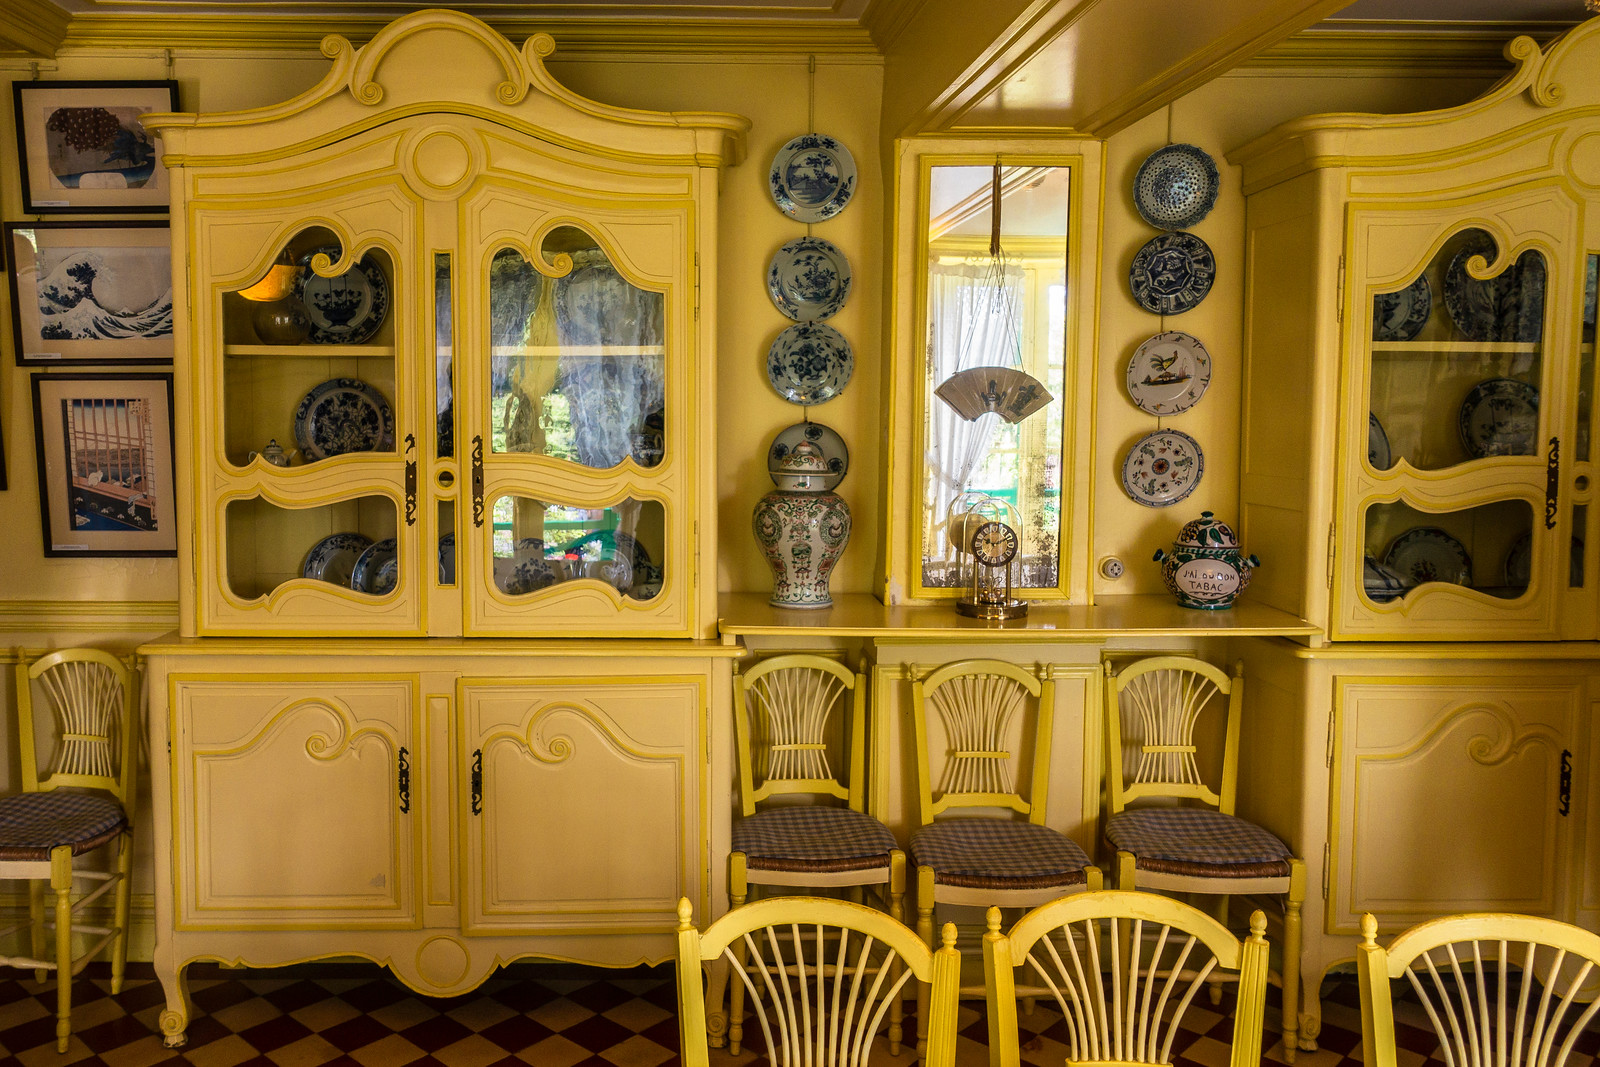 Monet's fabulous yellow kitchen featuring detailed yellow cabinets, yellow chairs and china pieces hanging on the walls.